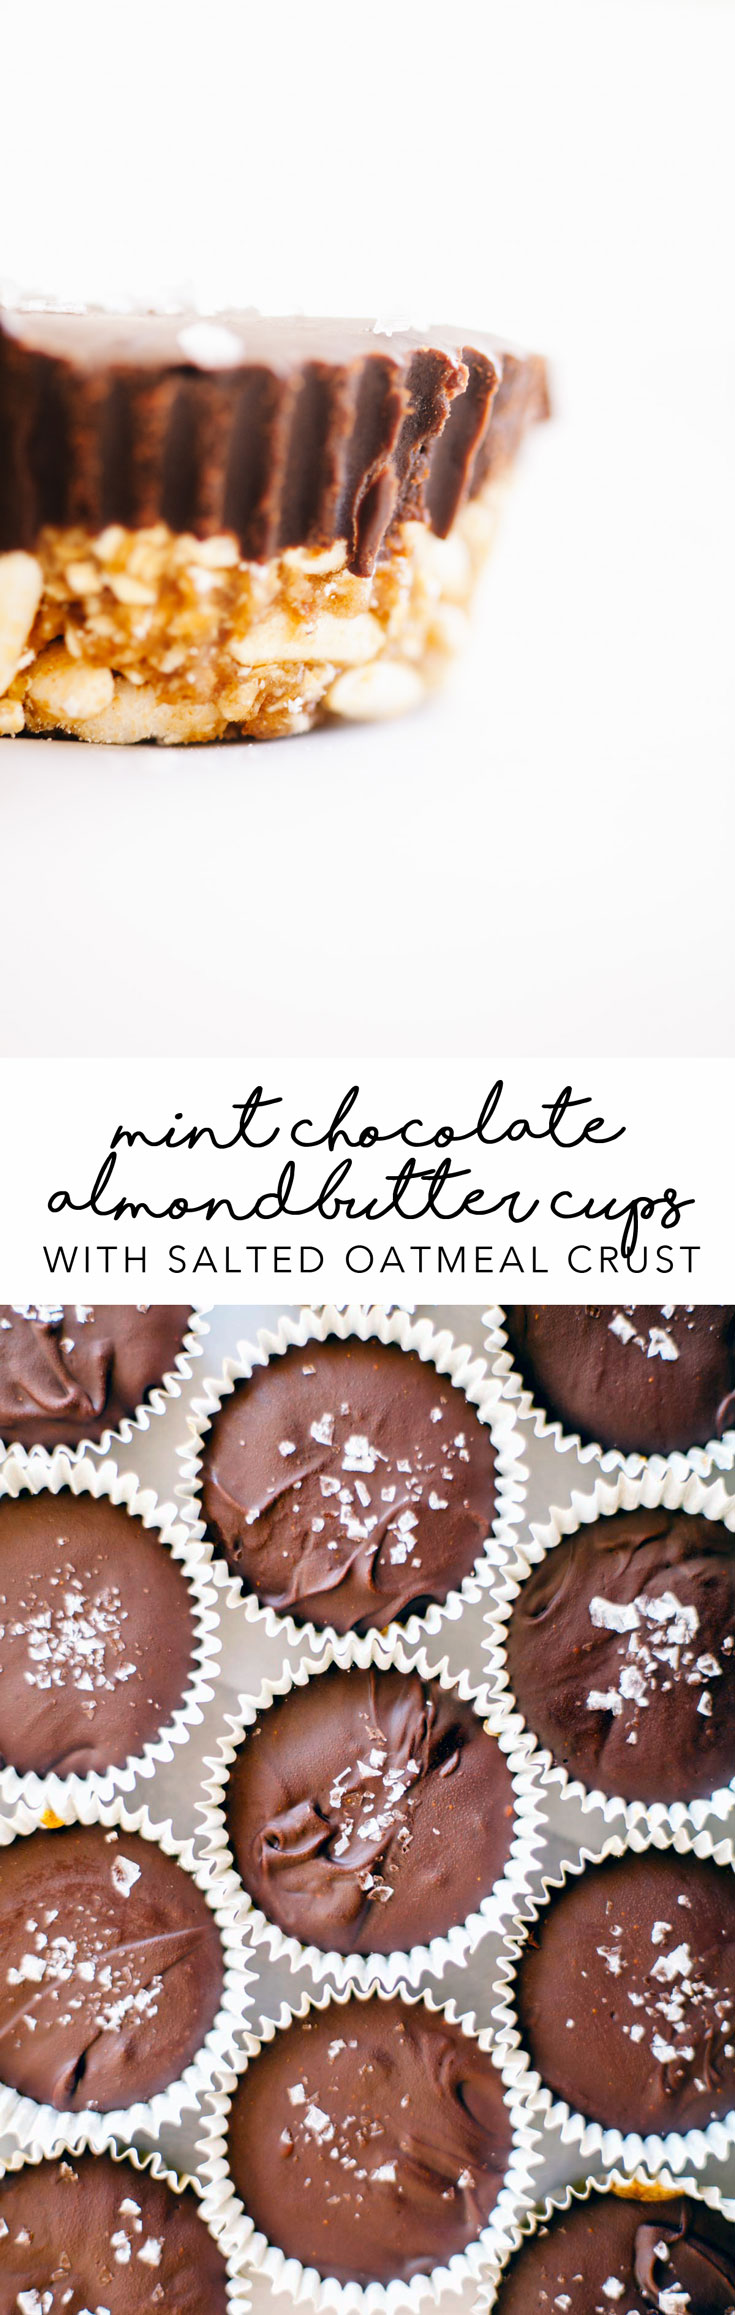 These Mint Chocolate Almond Butter Cups with Salty Oatmeal Crusts are vegan, gluten-free, and the best holiday treat for your friends and family! #vegan #dessert #holiday | Brewing Happiness